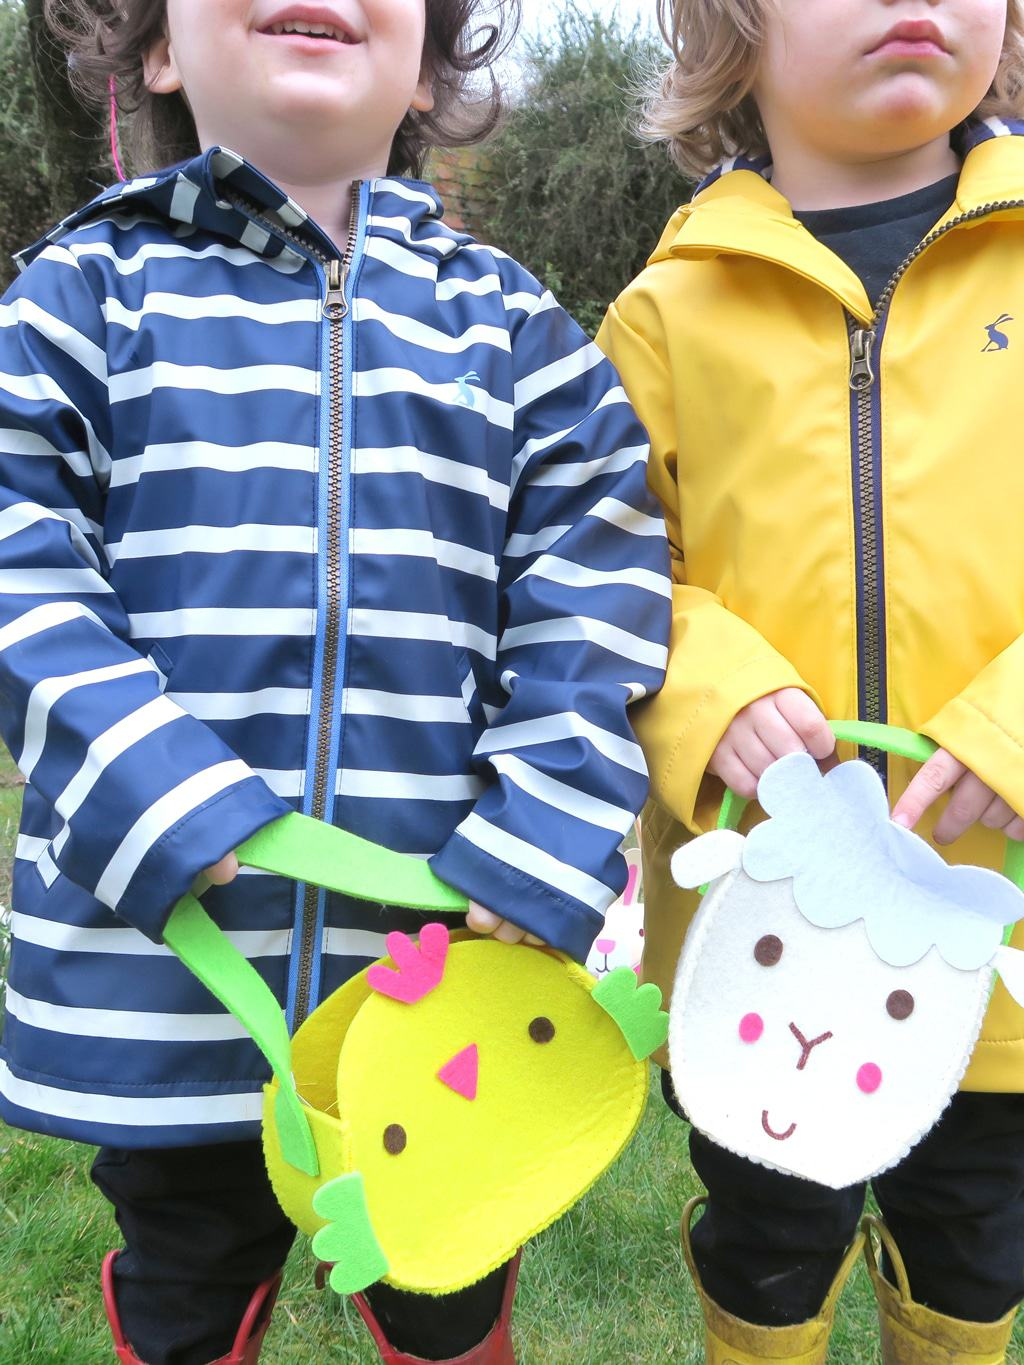 Little easter bags for an Easter egg hunt from the post How to Organise an Easter Egg Hunt For Toddlers by The Twinkle Diaries